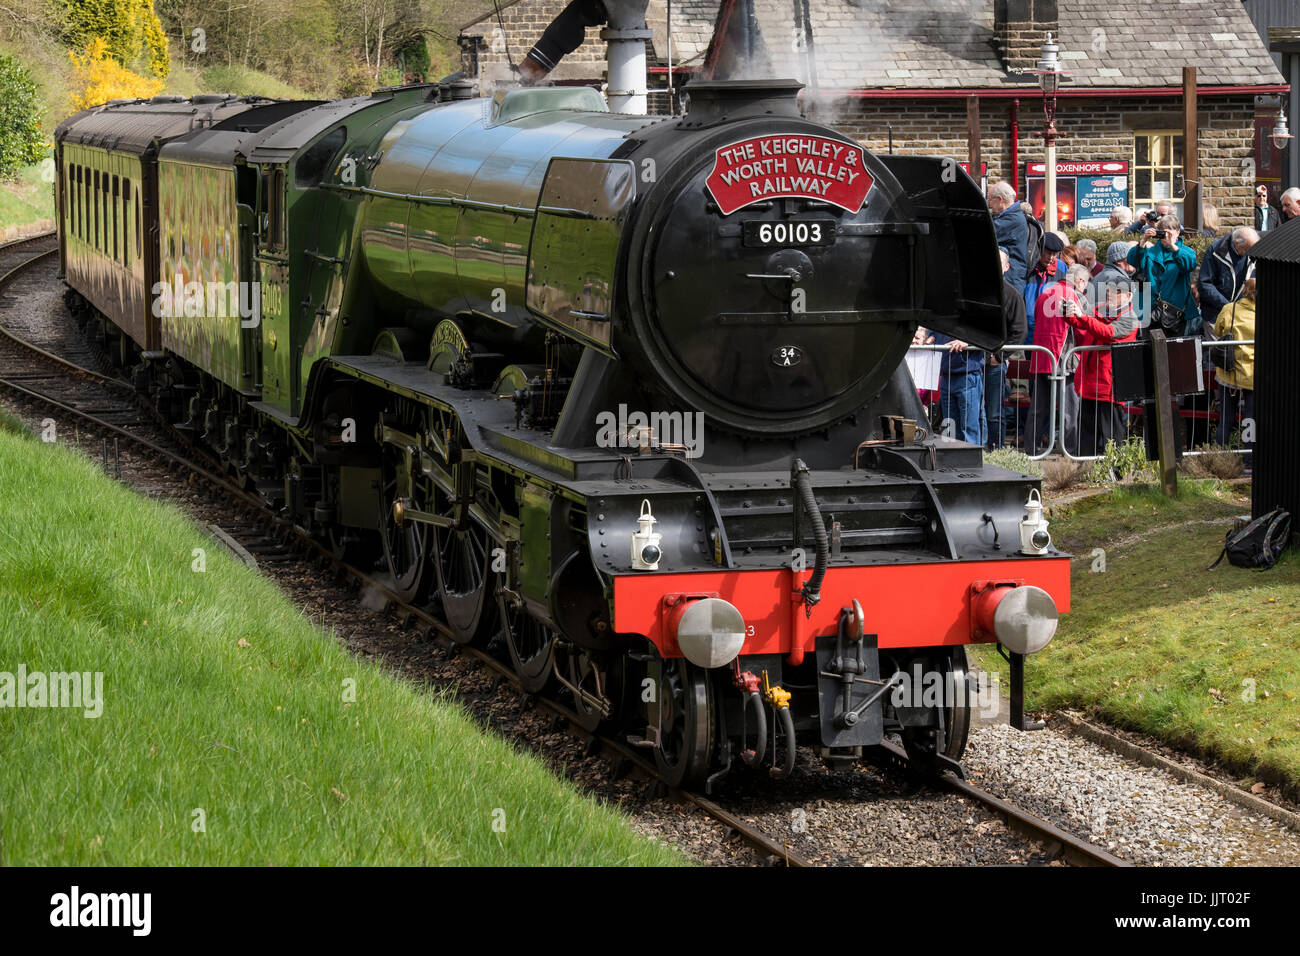 People & iconic steam locomotive LNER Class A3 60103 Flying Scotsman puffing smoke on tracks - Keighley and - Stock Image